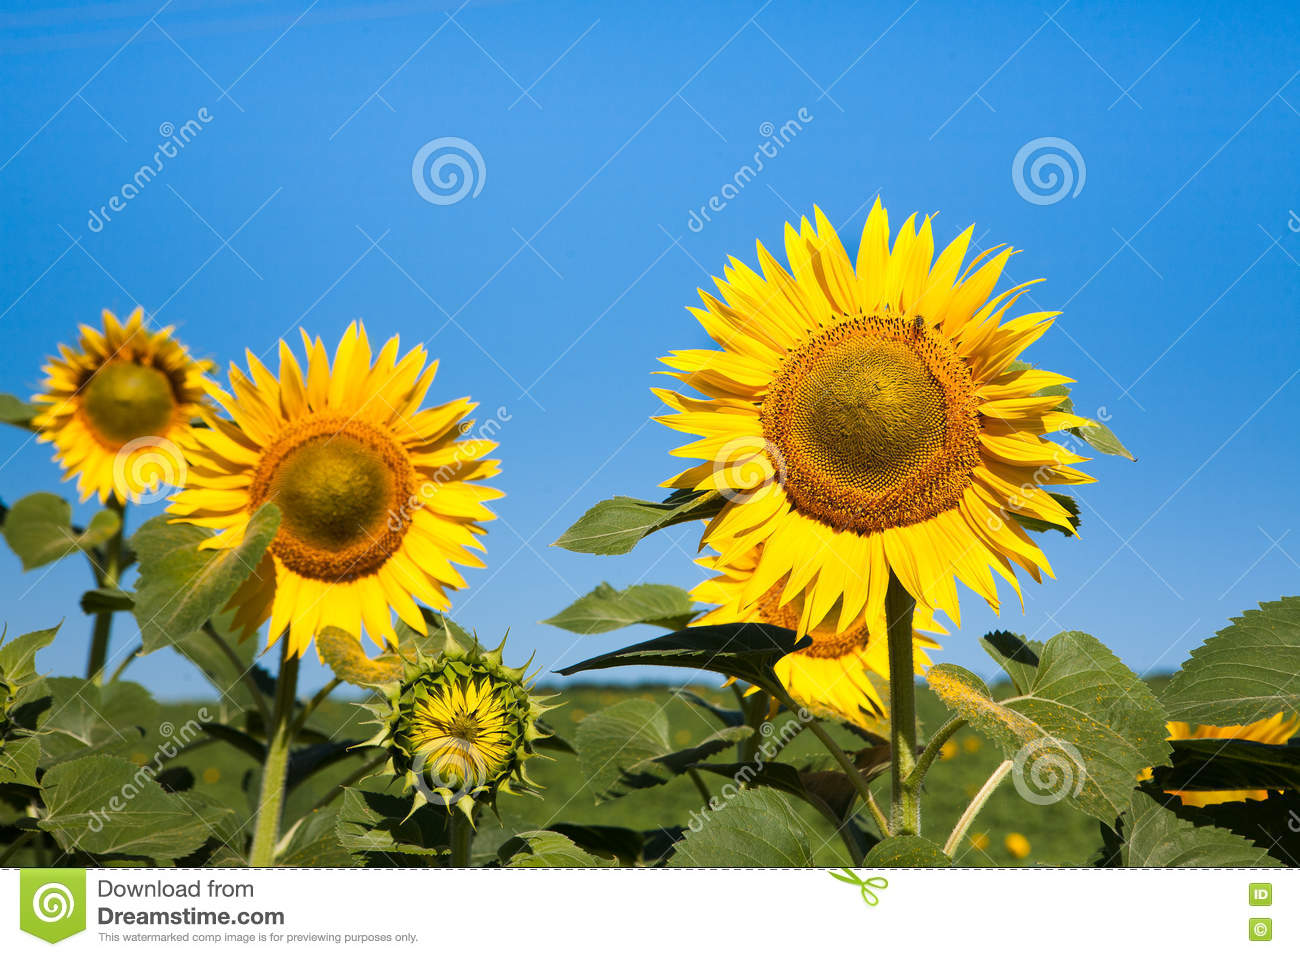 Sunflower oil production business plan